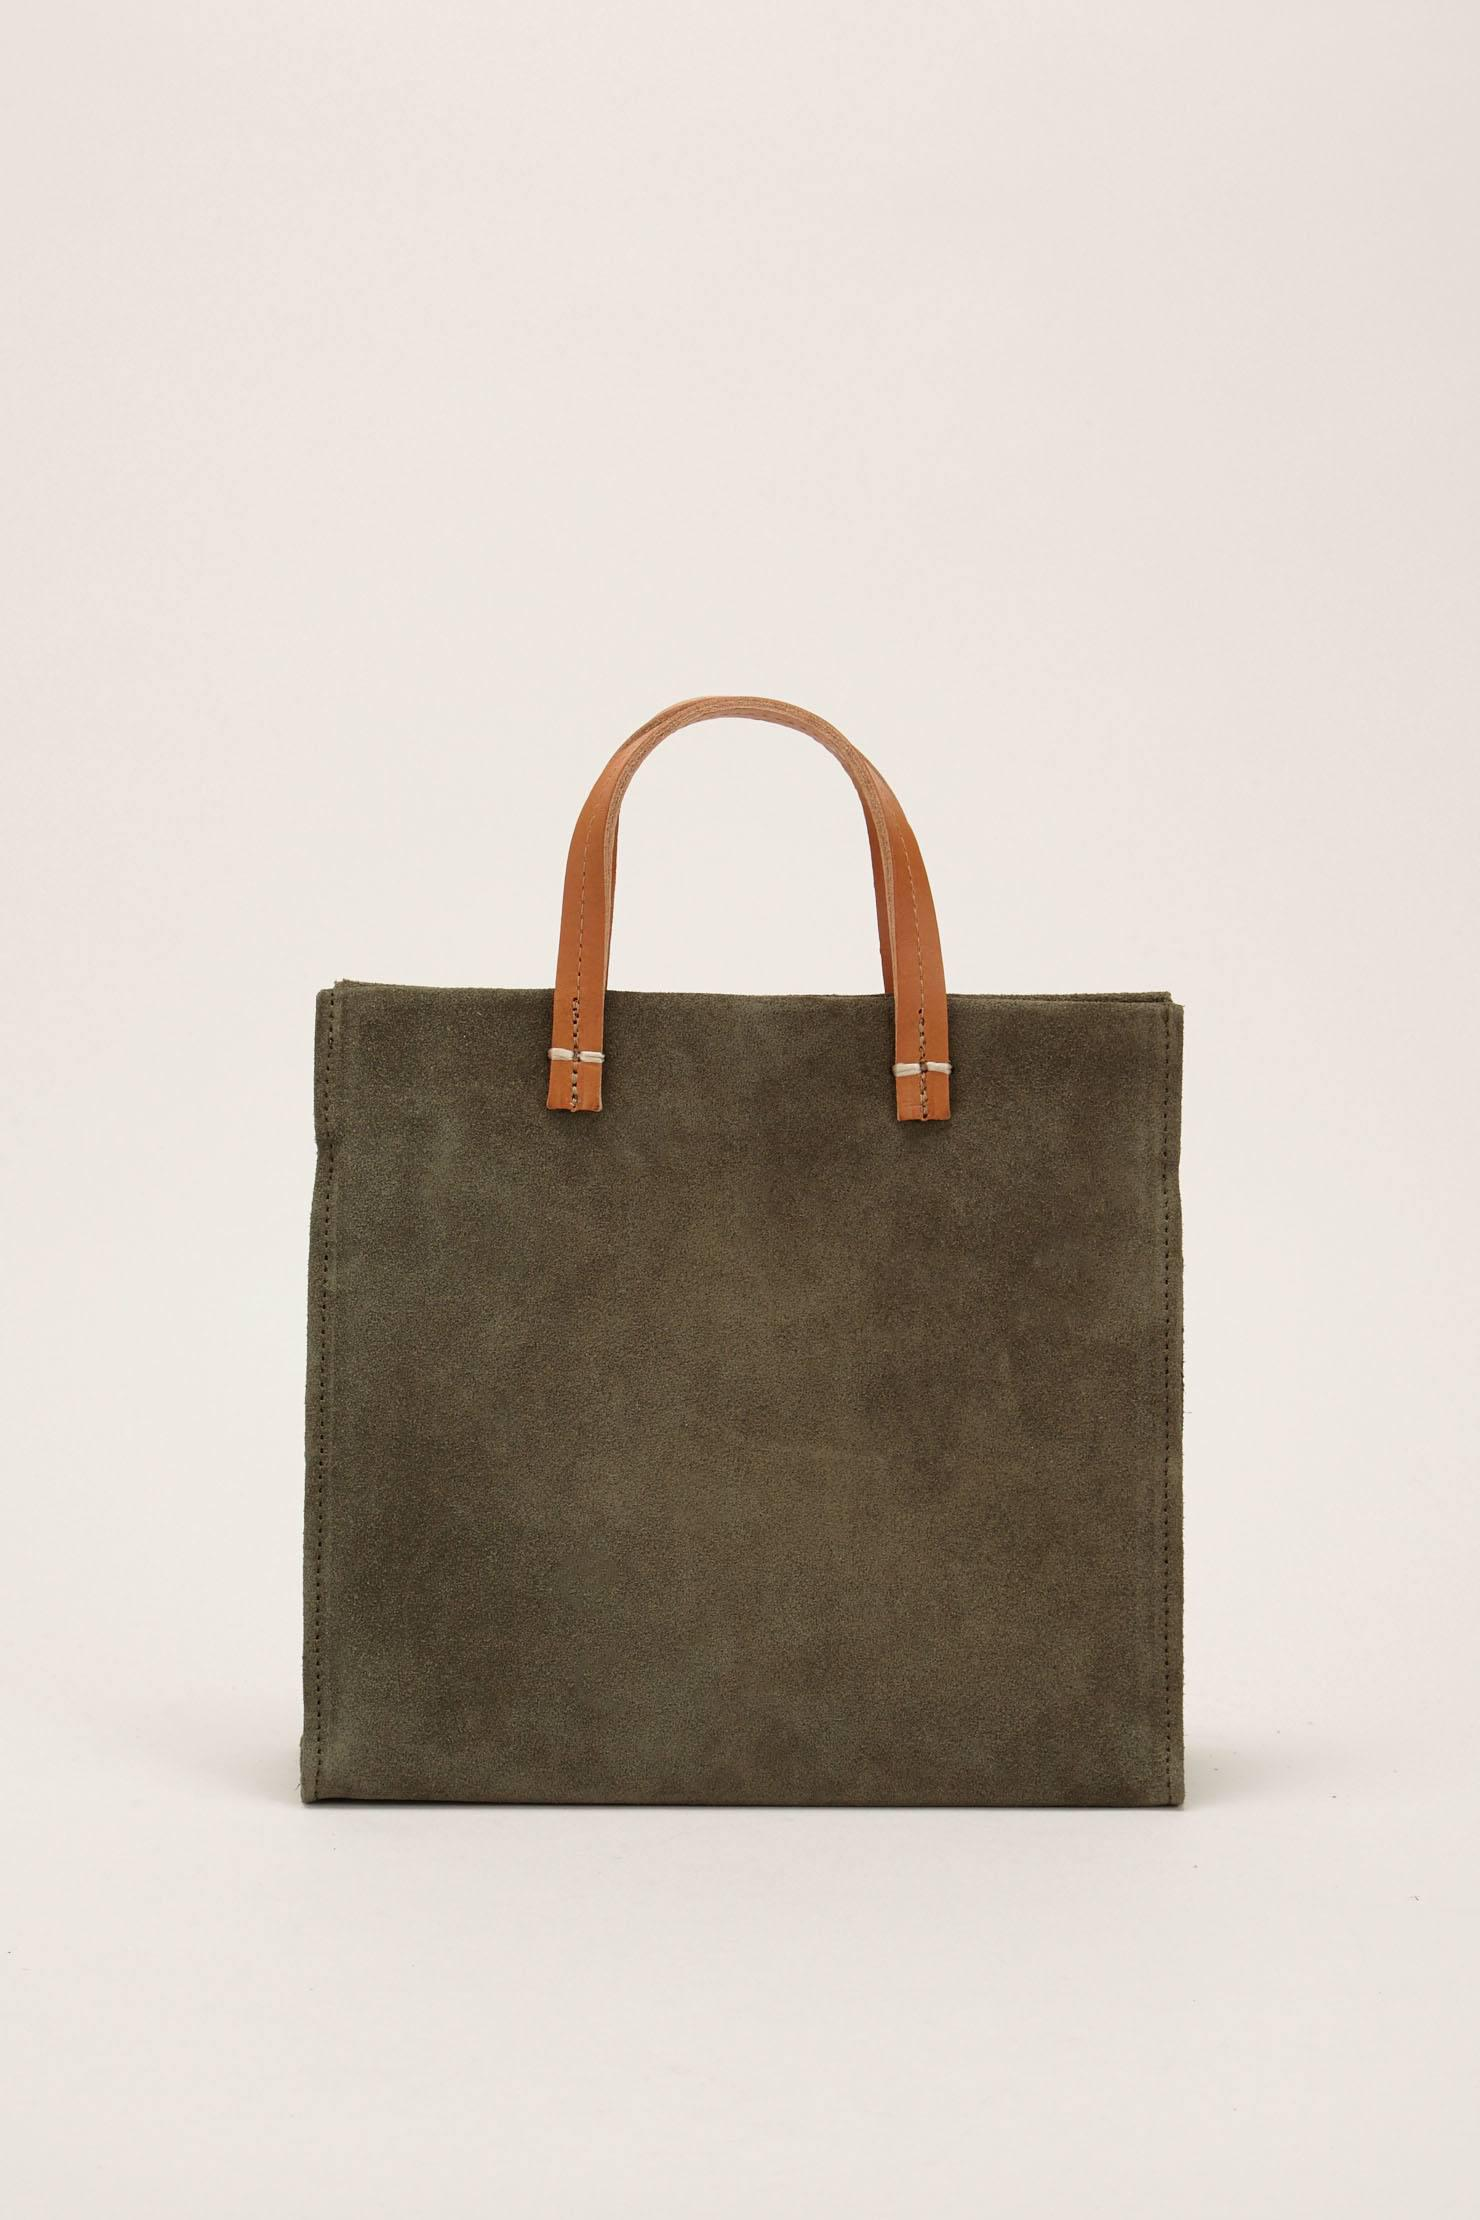 d1ba989183 Lyst - Clare V. Hand Bags in Green